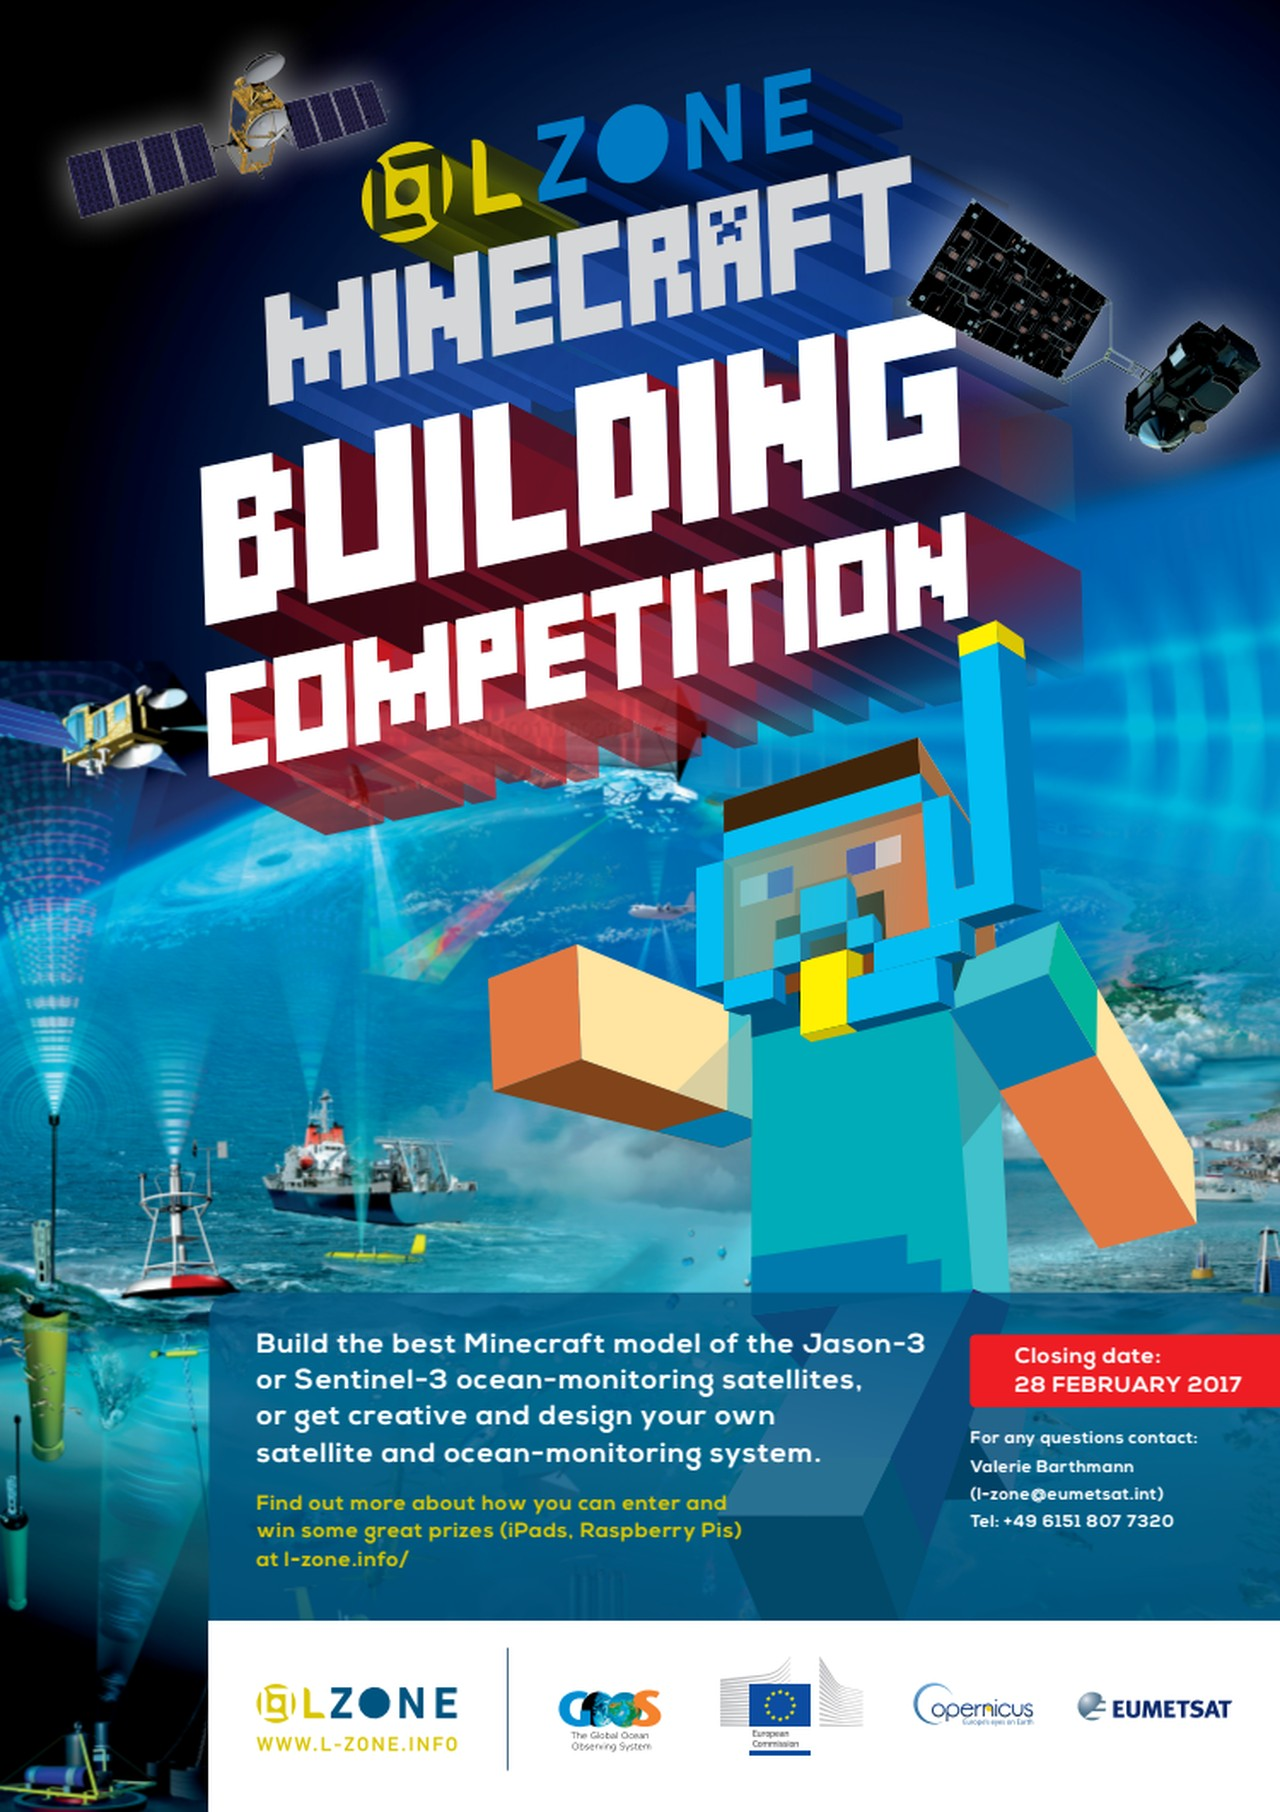 Poster design contest 2017 - L Zone Minecraft Competition Poster